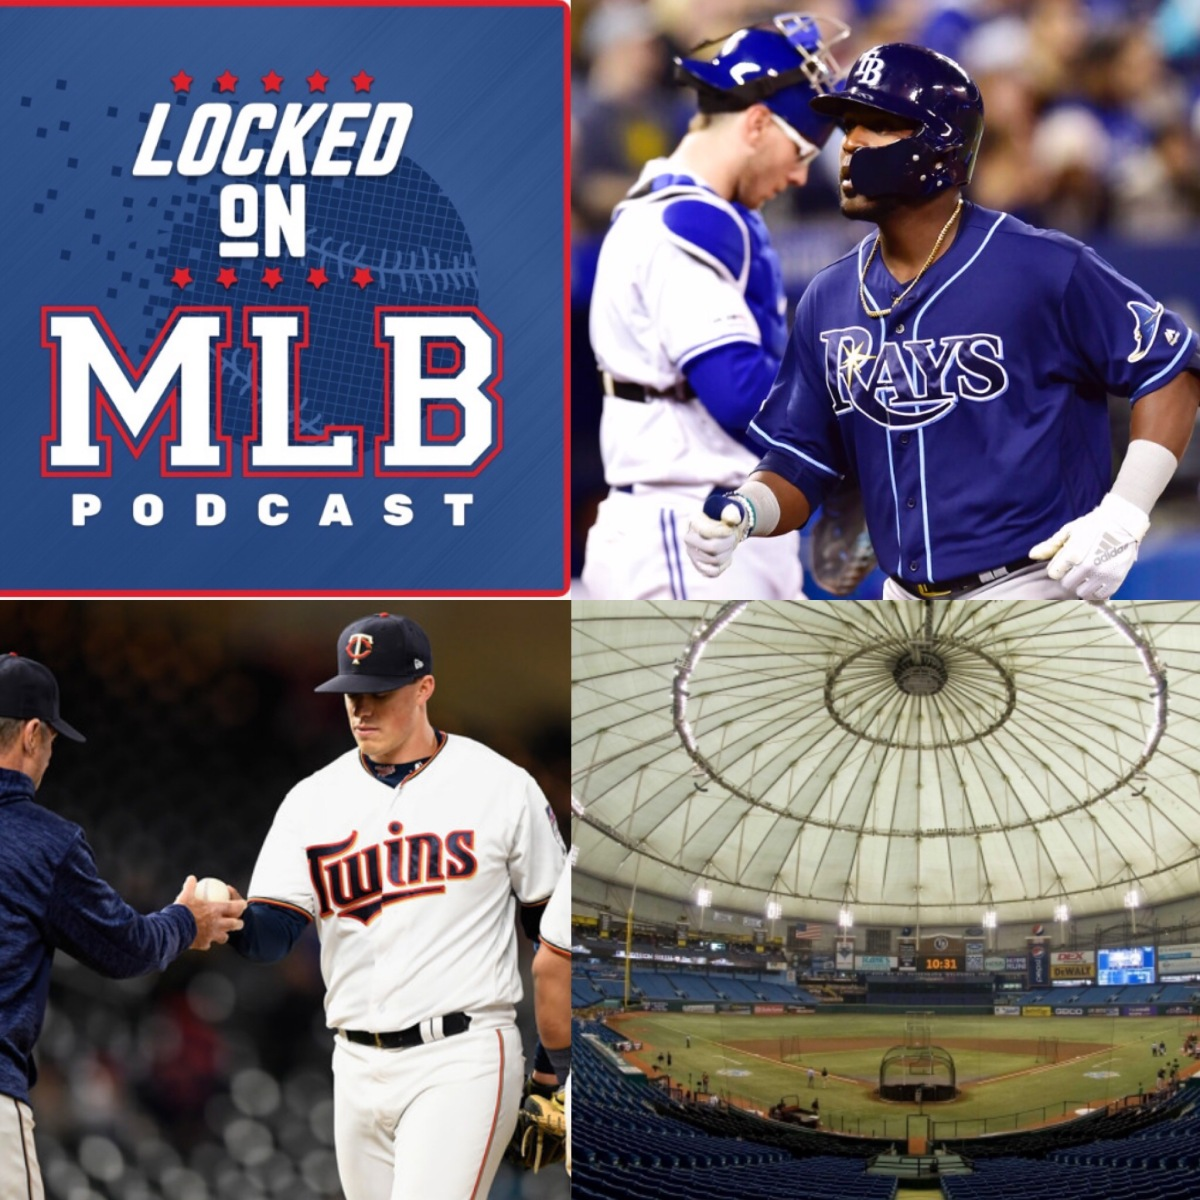 Shaky Bullpens and Rays of Hope - @LockedOnMLB for April 22, 2019